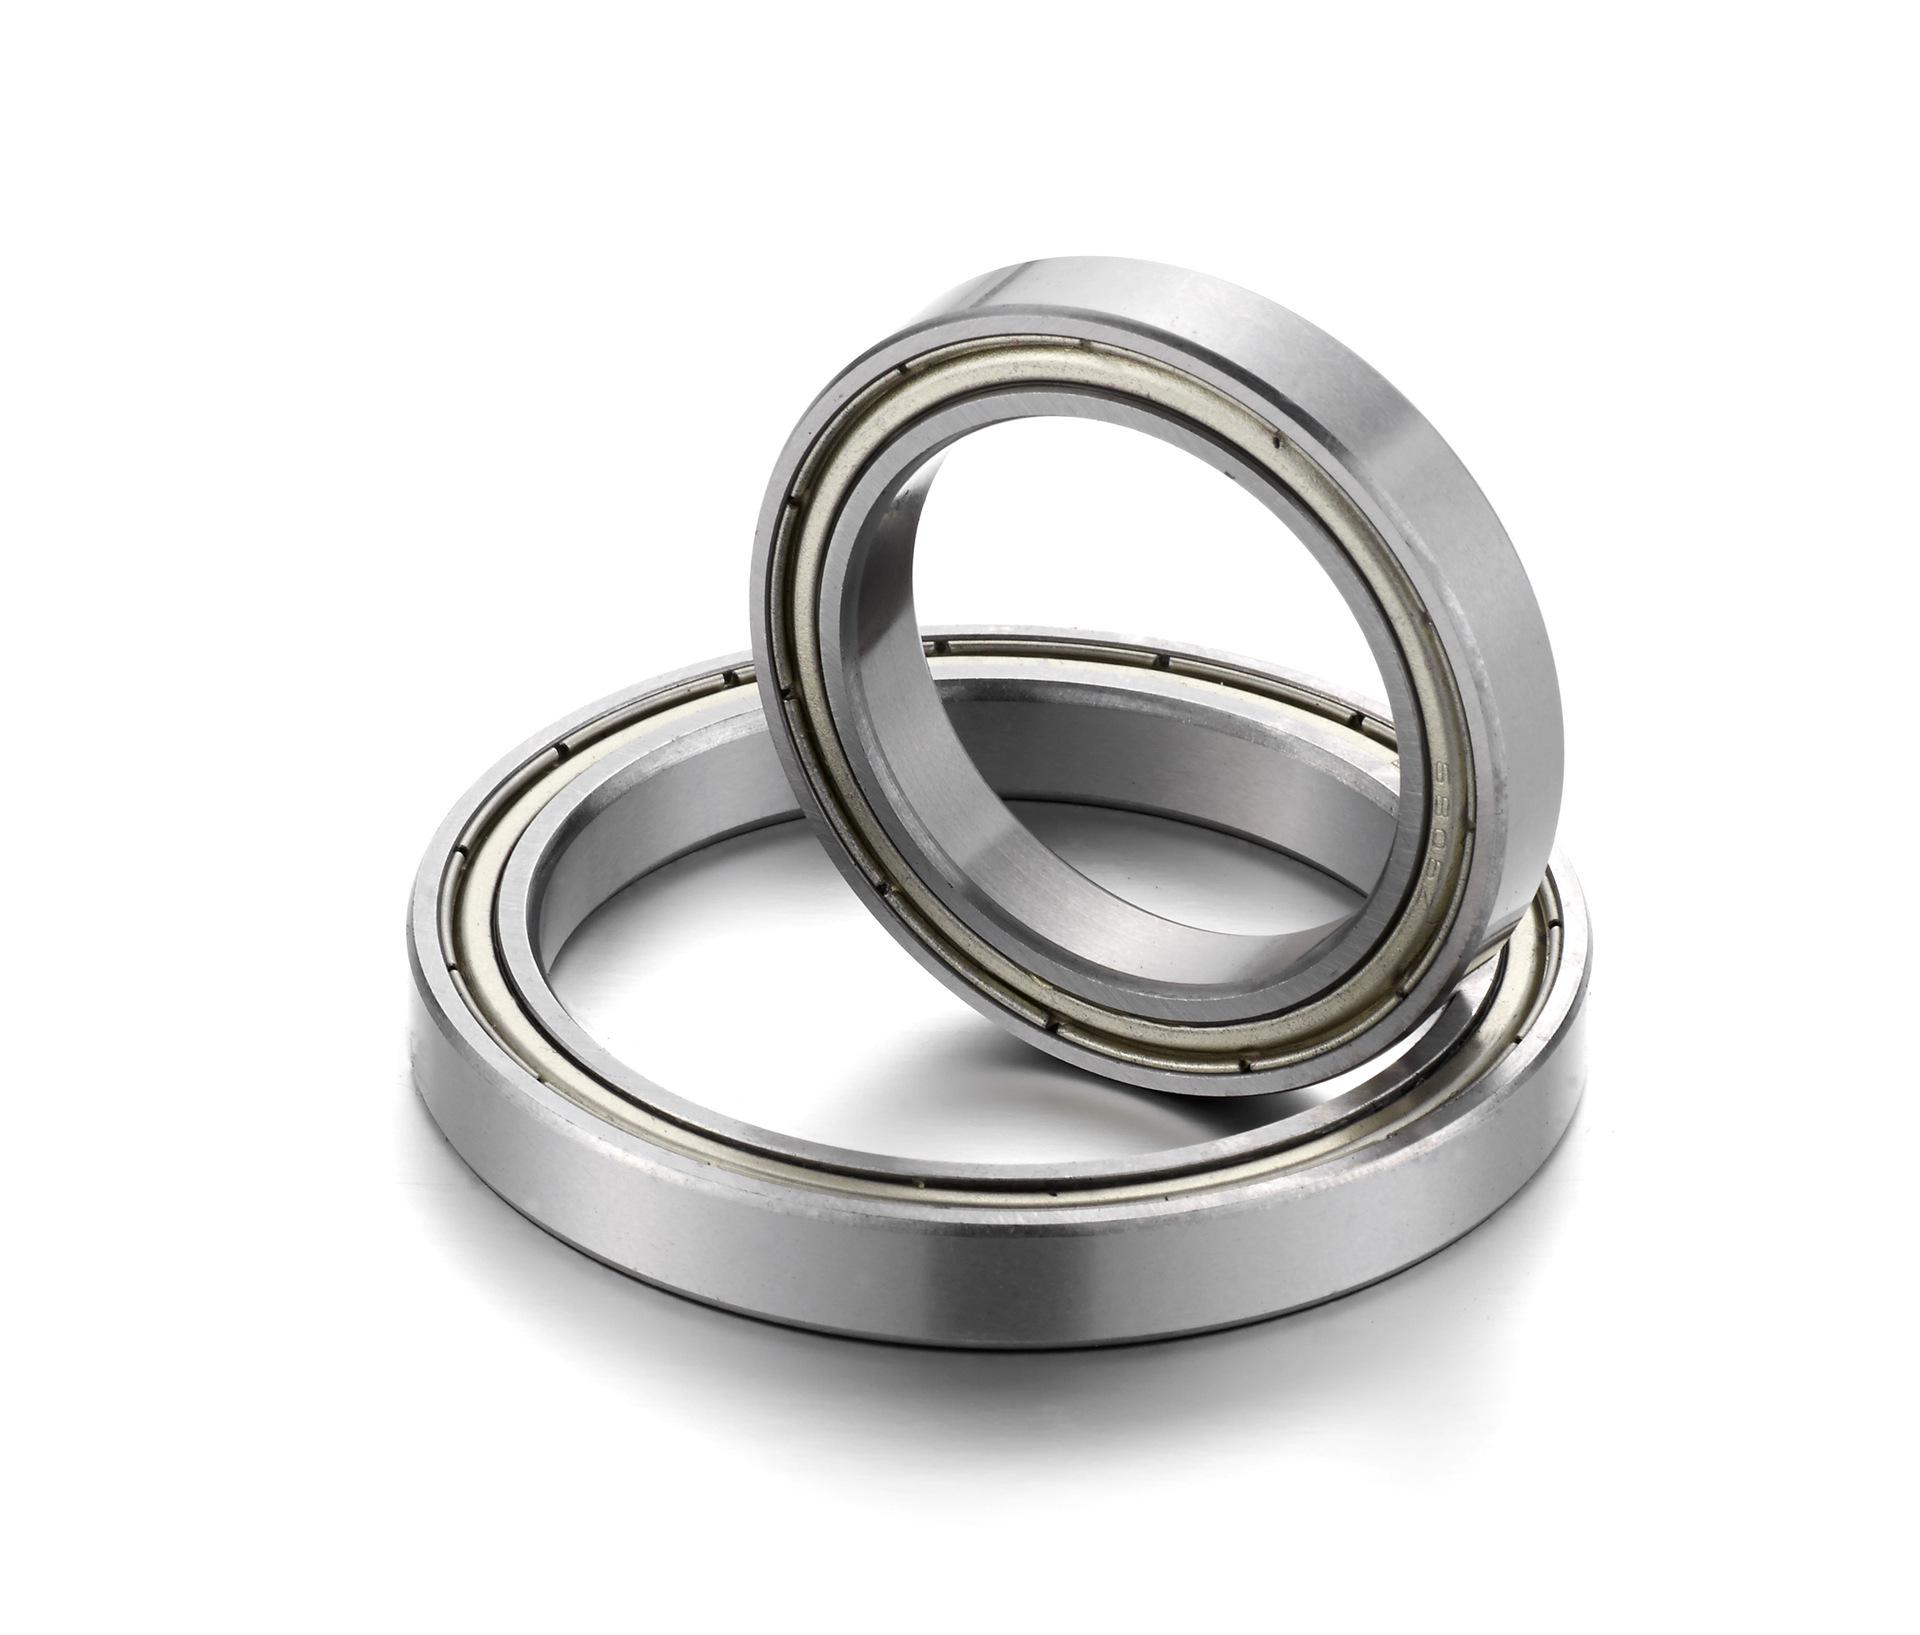 ФОТО 6834M ABEC-1 170x215x22mm Metric Thin Section Bearings 61834M Brass cage